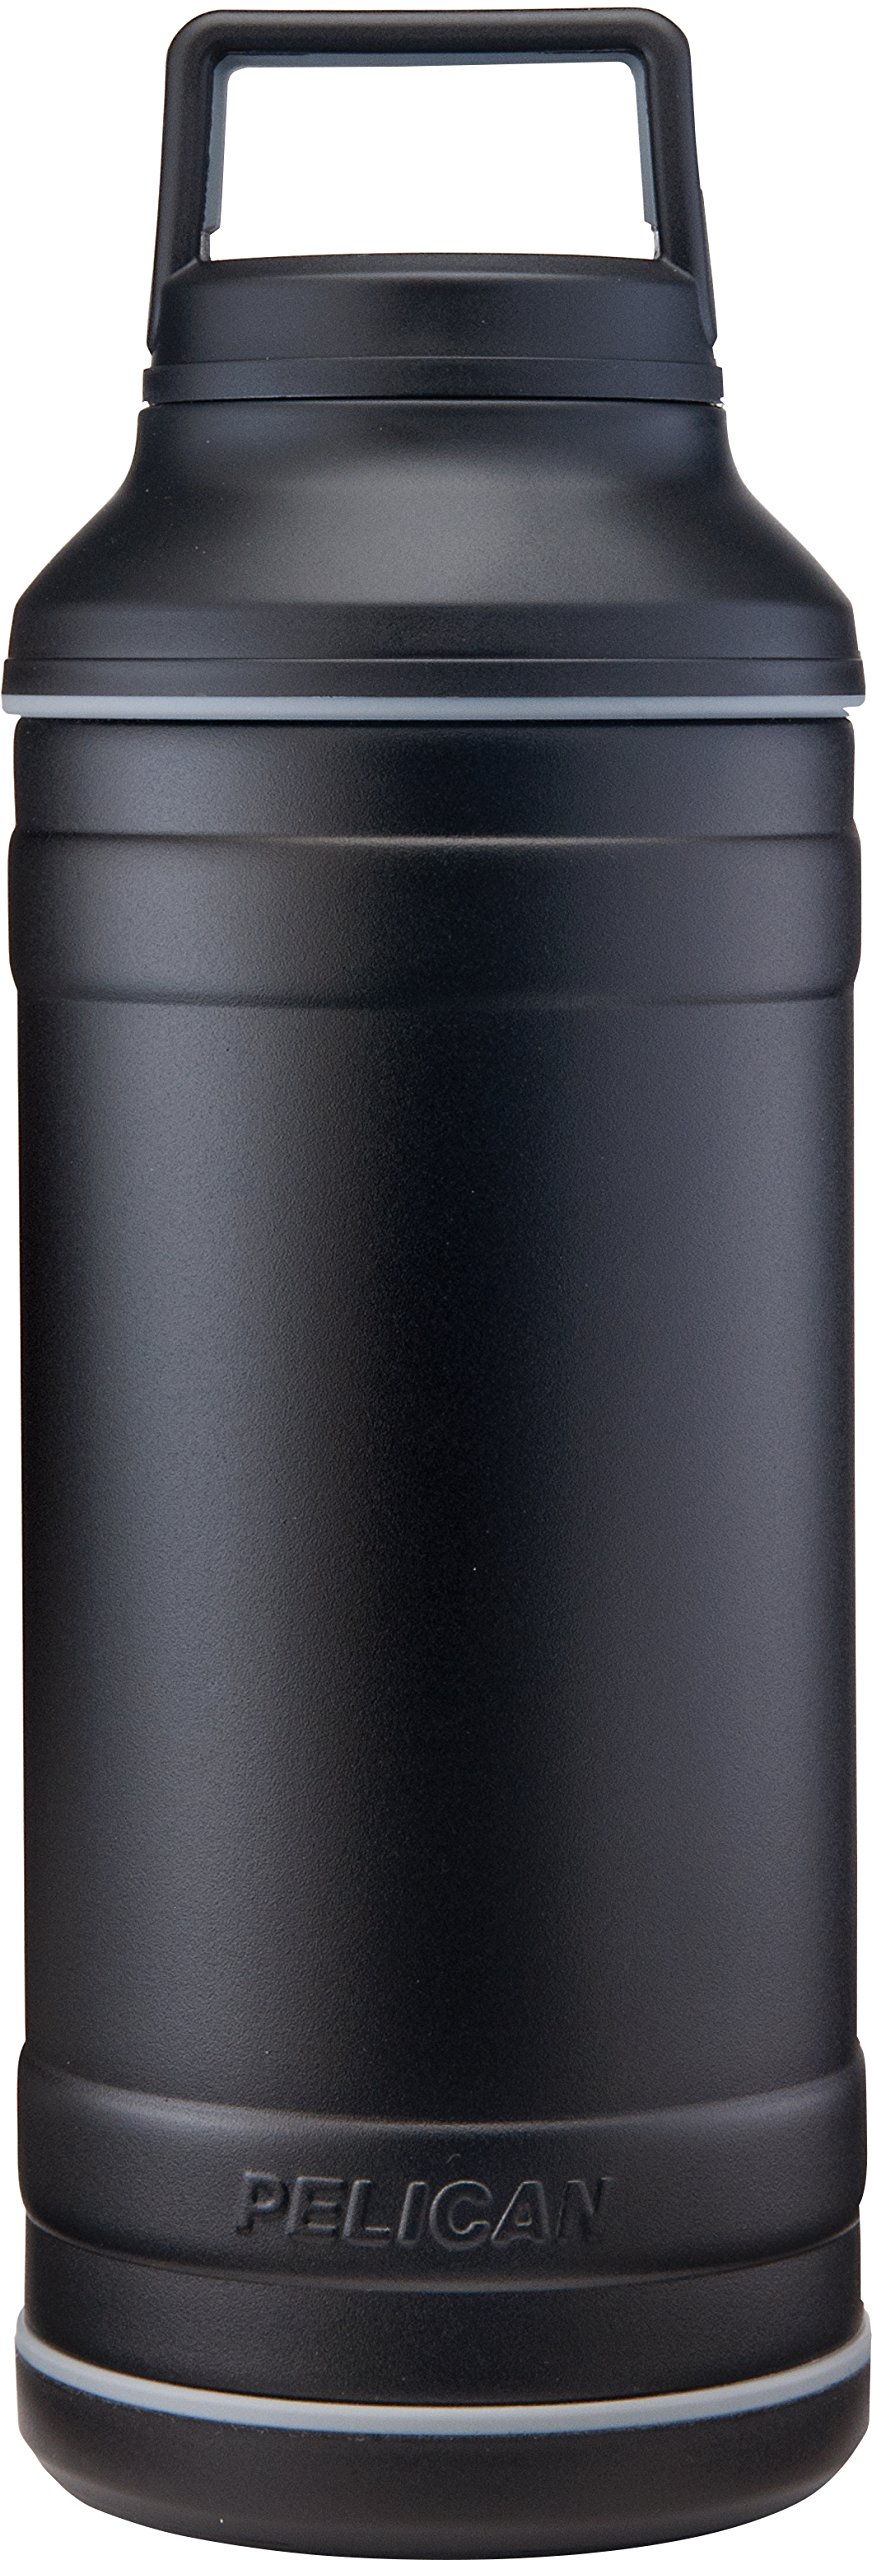 Pelican Bottle 64oz (Black) by Pelican